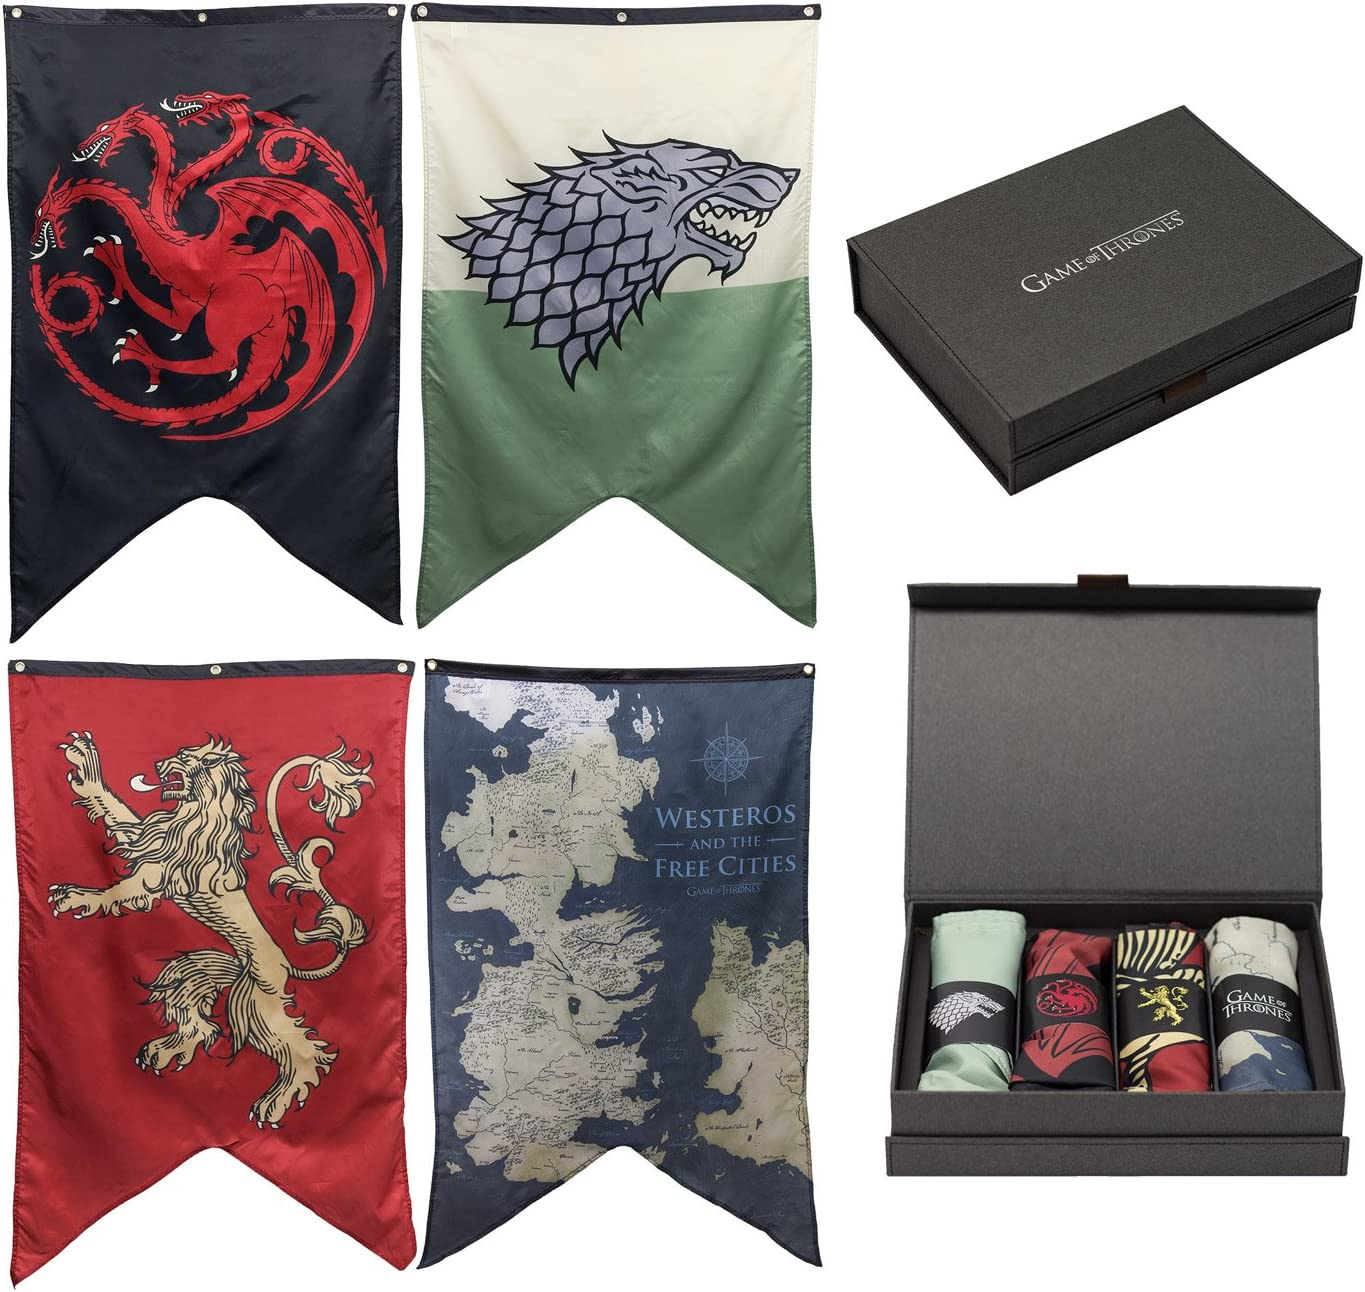 Game of Thrones House Sigils & Westeros Map Wall Banner